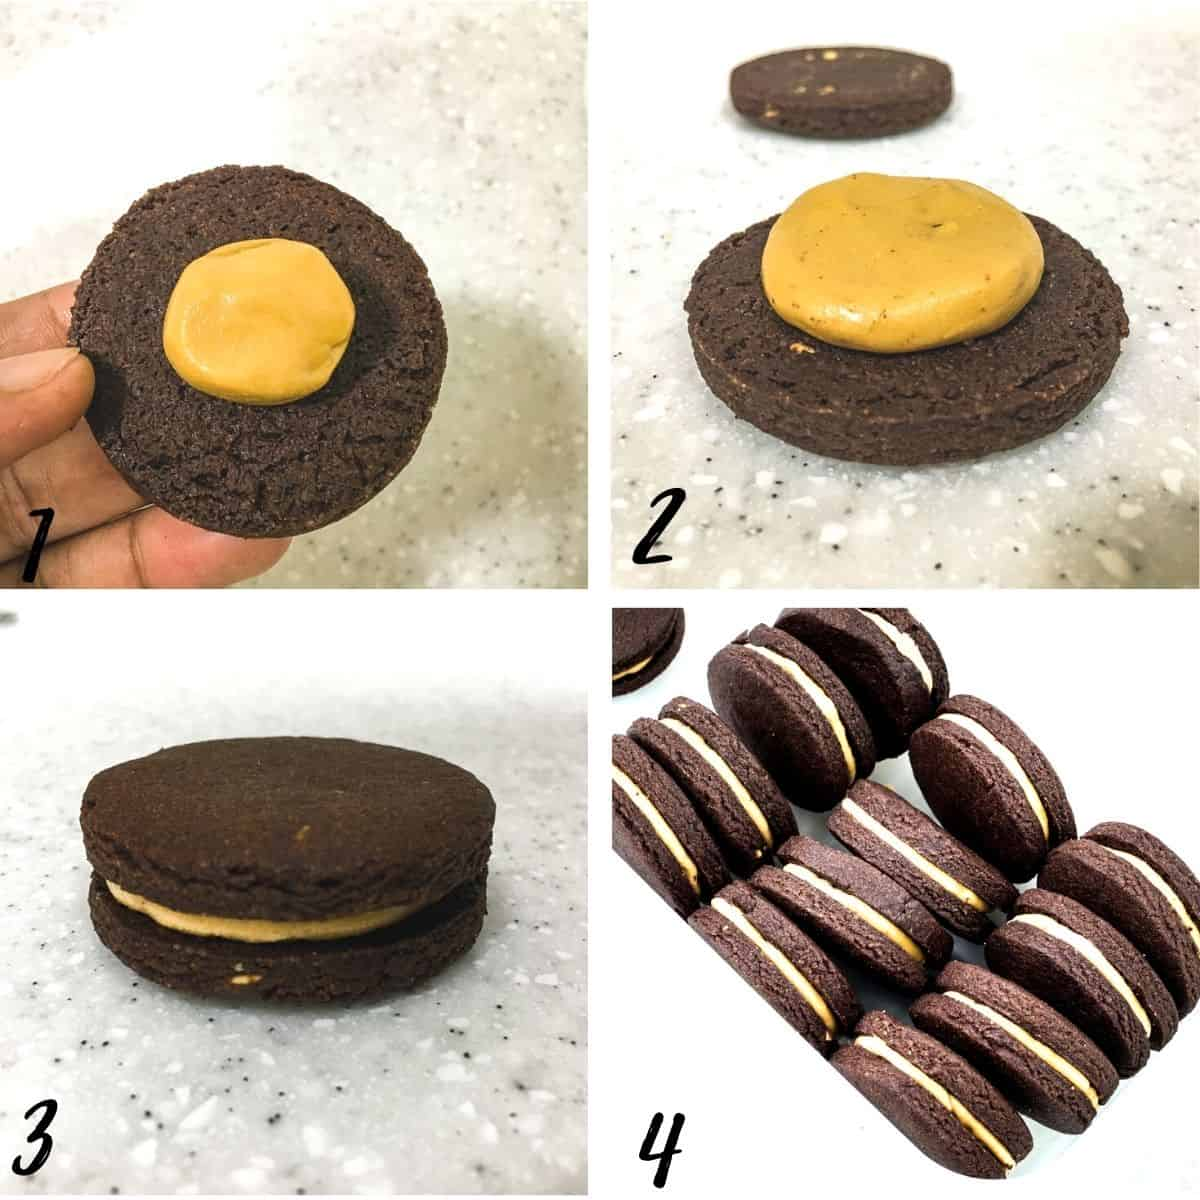 A poster of 4 images showing how to assemble chocolate peanut butter sandwich cookies